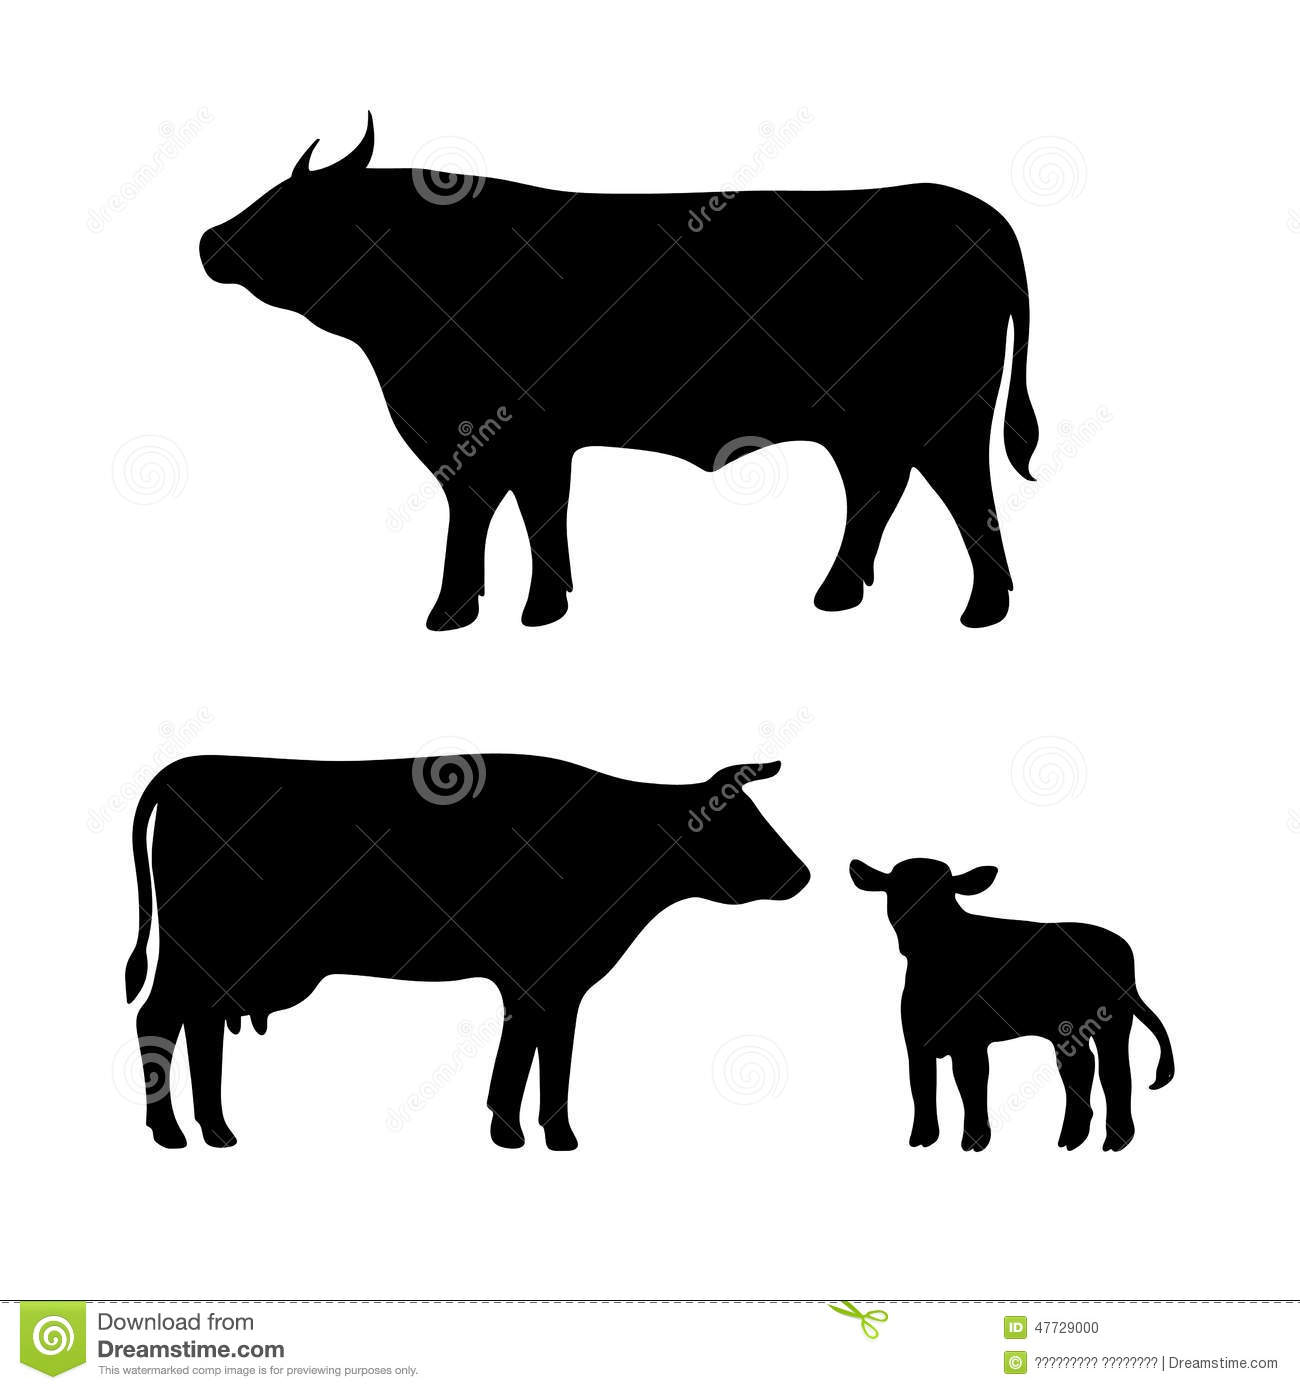 Cow, Bull, Calf Stock Illustration. Image Of Drawing